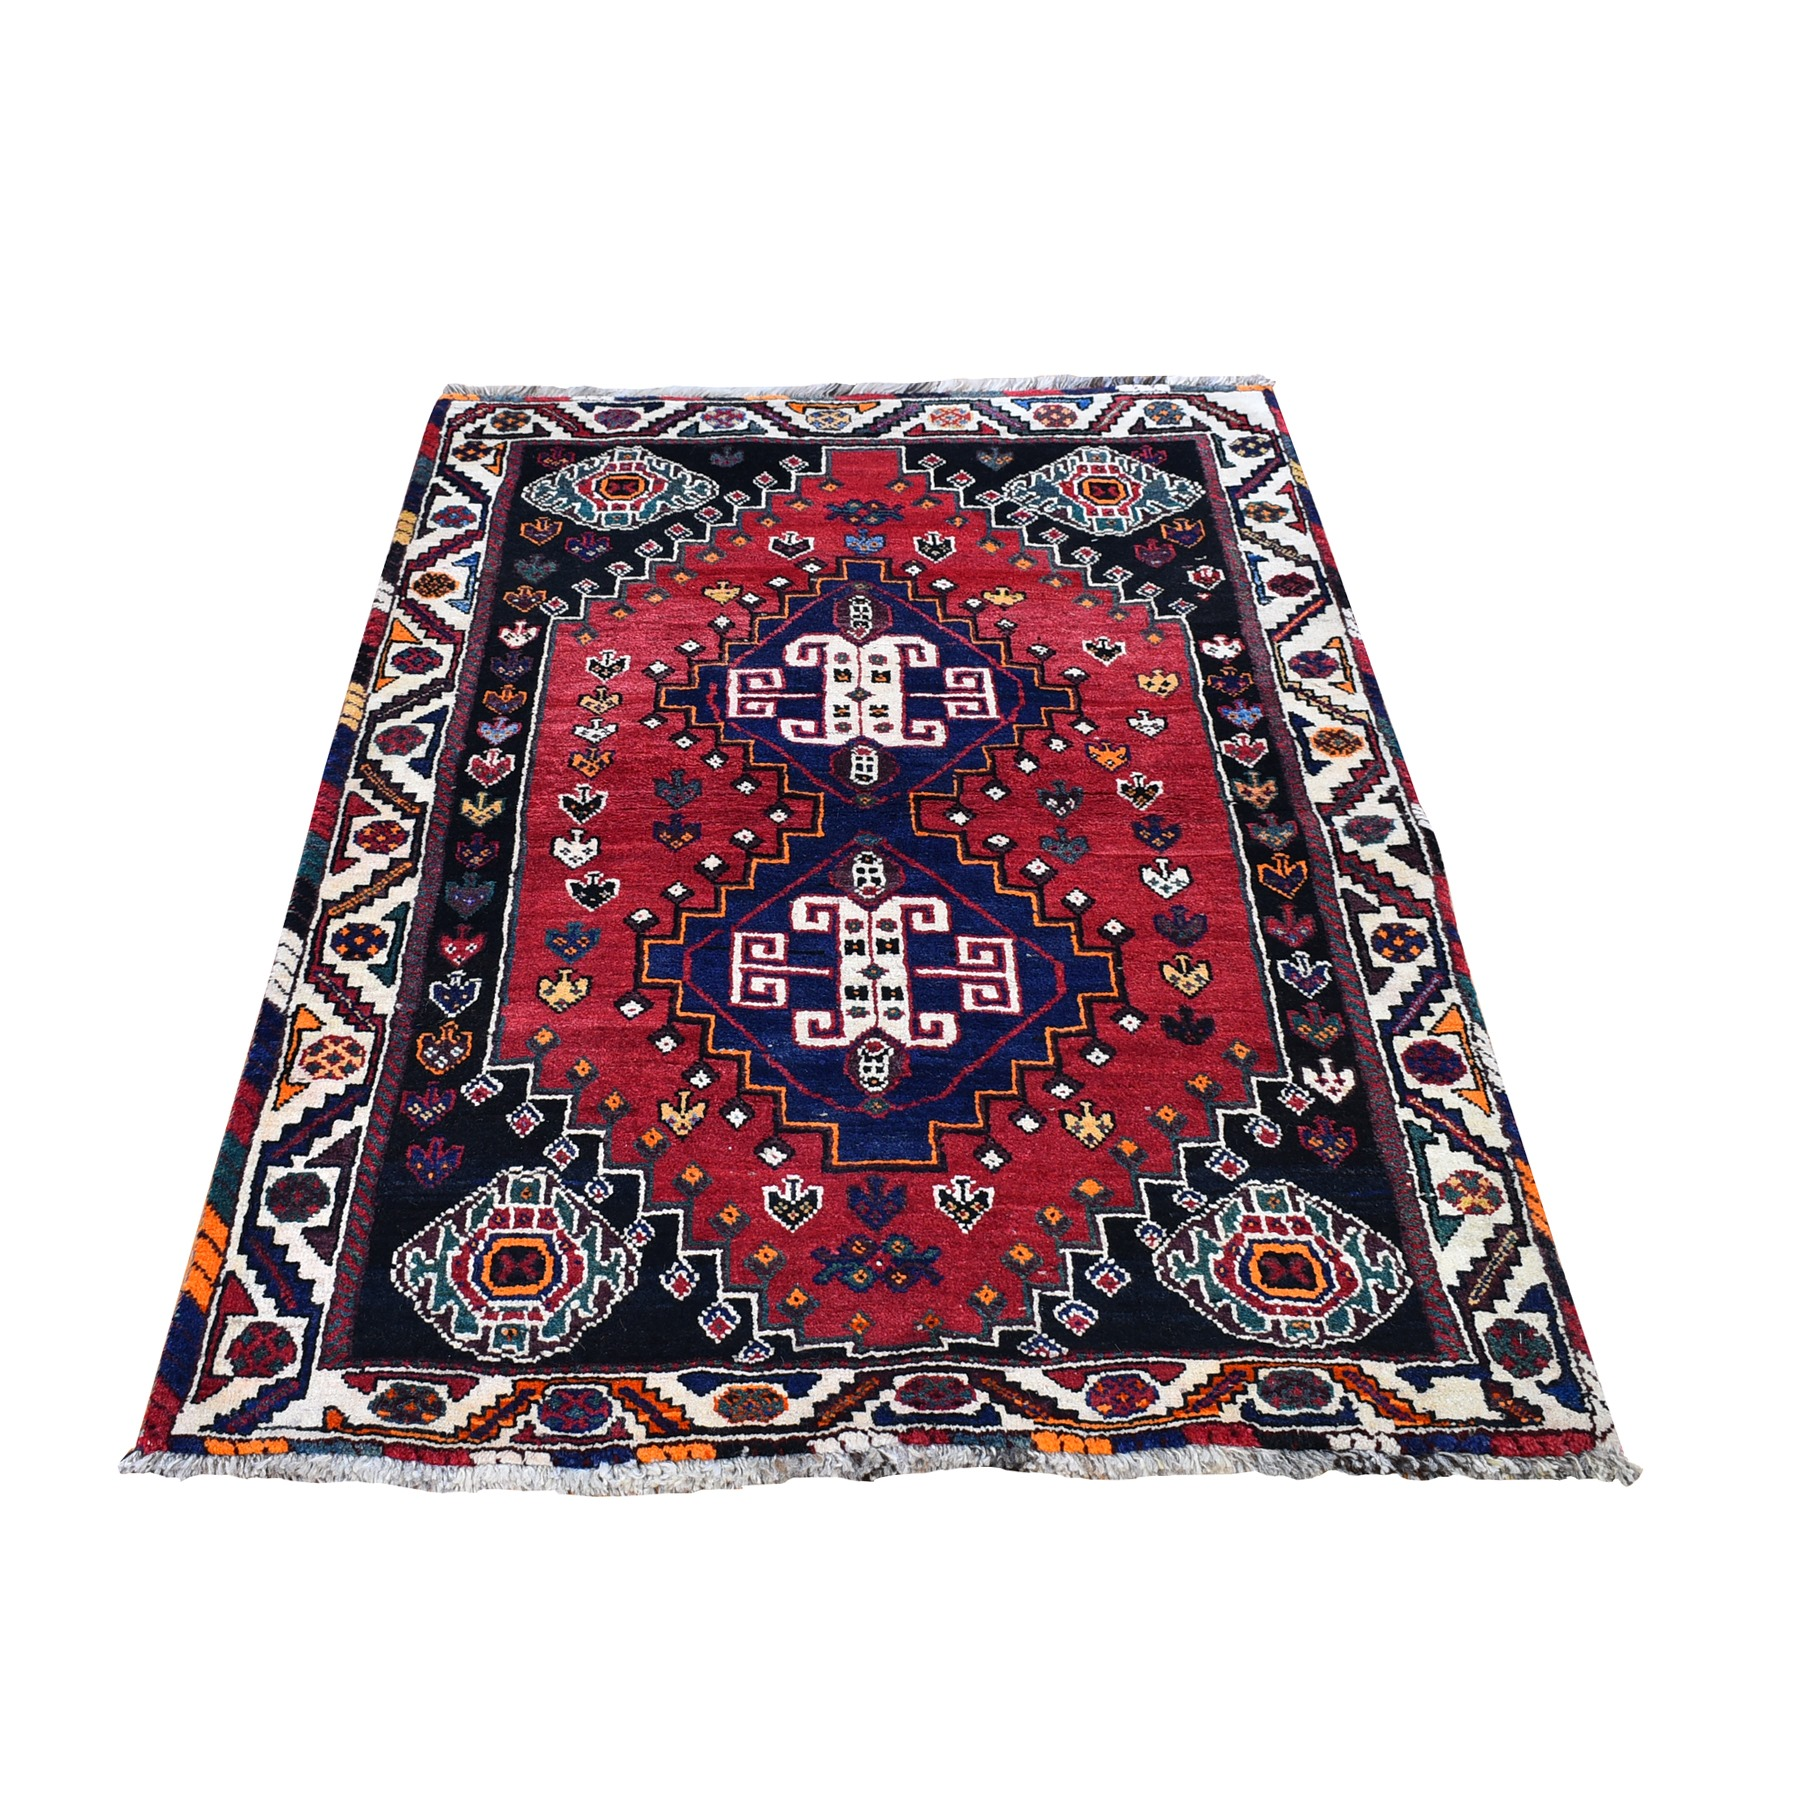 "3'8""x5'7"" Red New Persian Shiraz Geometric Design Organic Wool Hand Knotted Oriental Rug"